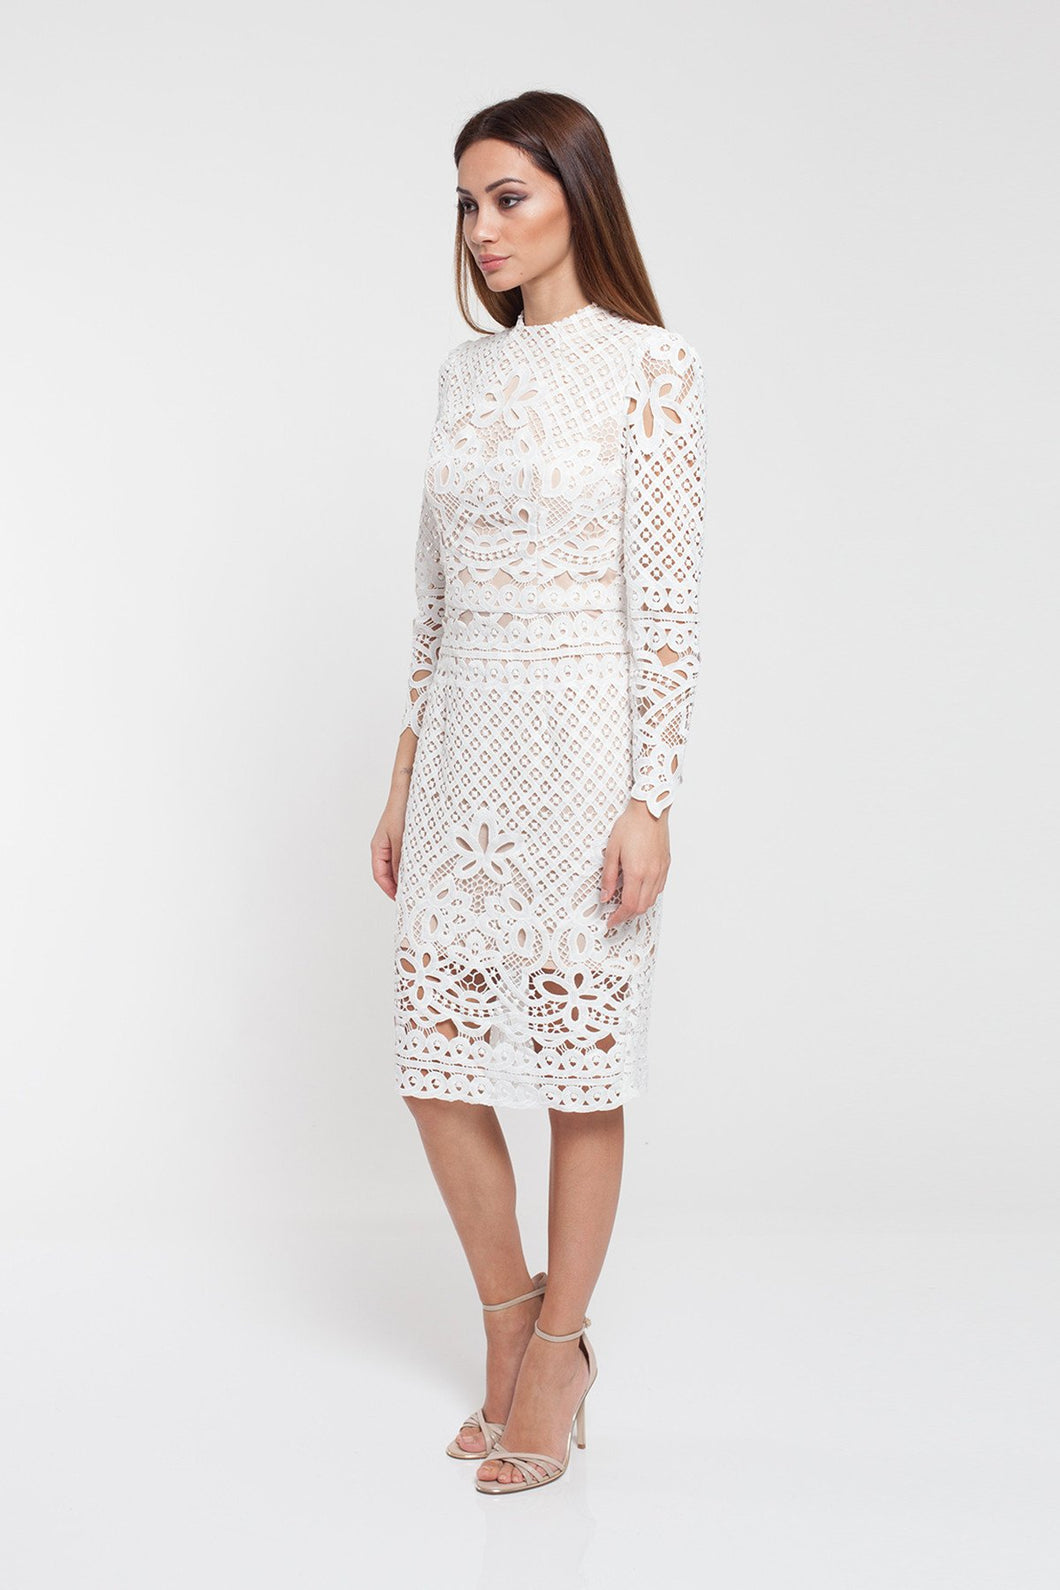 Romance - Annabelle Lace Long Sleeve - White - RD172004